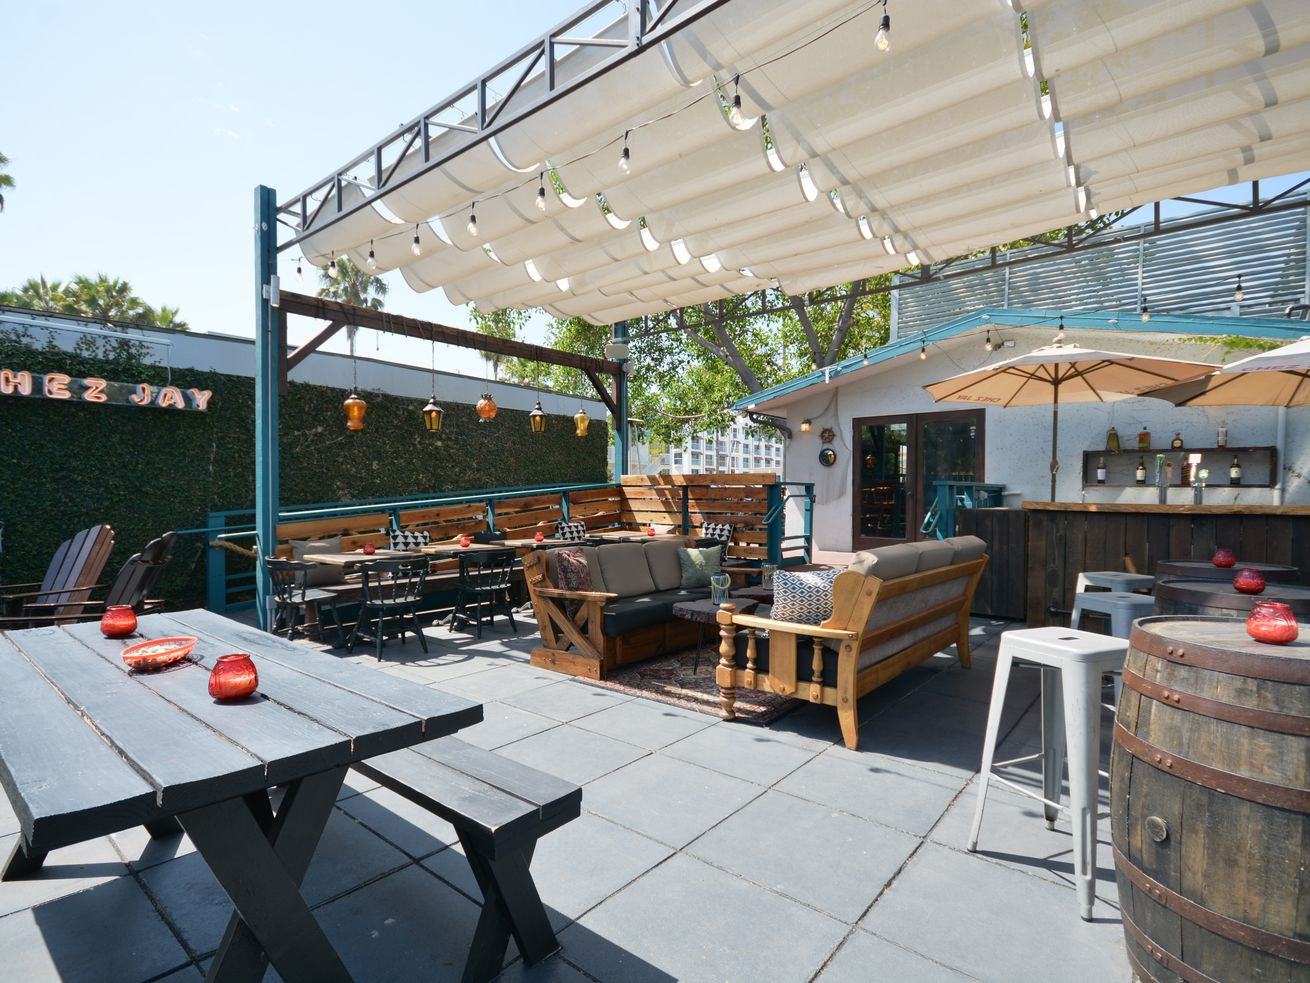 New back patio at Santa Monica dive Chez Jay with picnic benches and tables